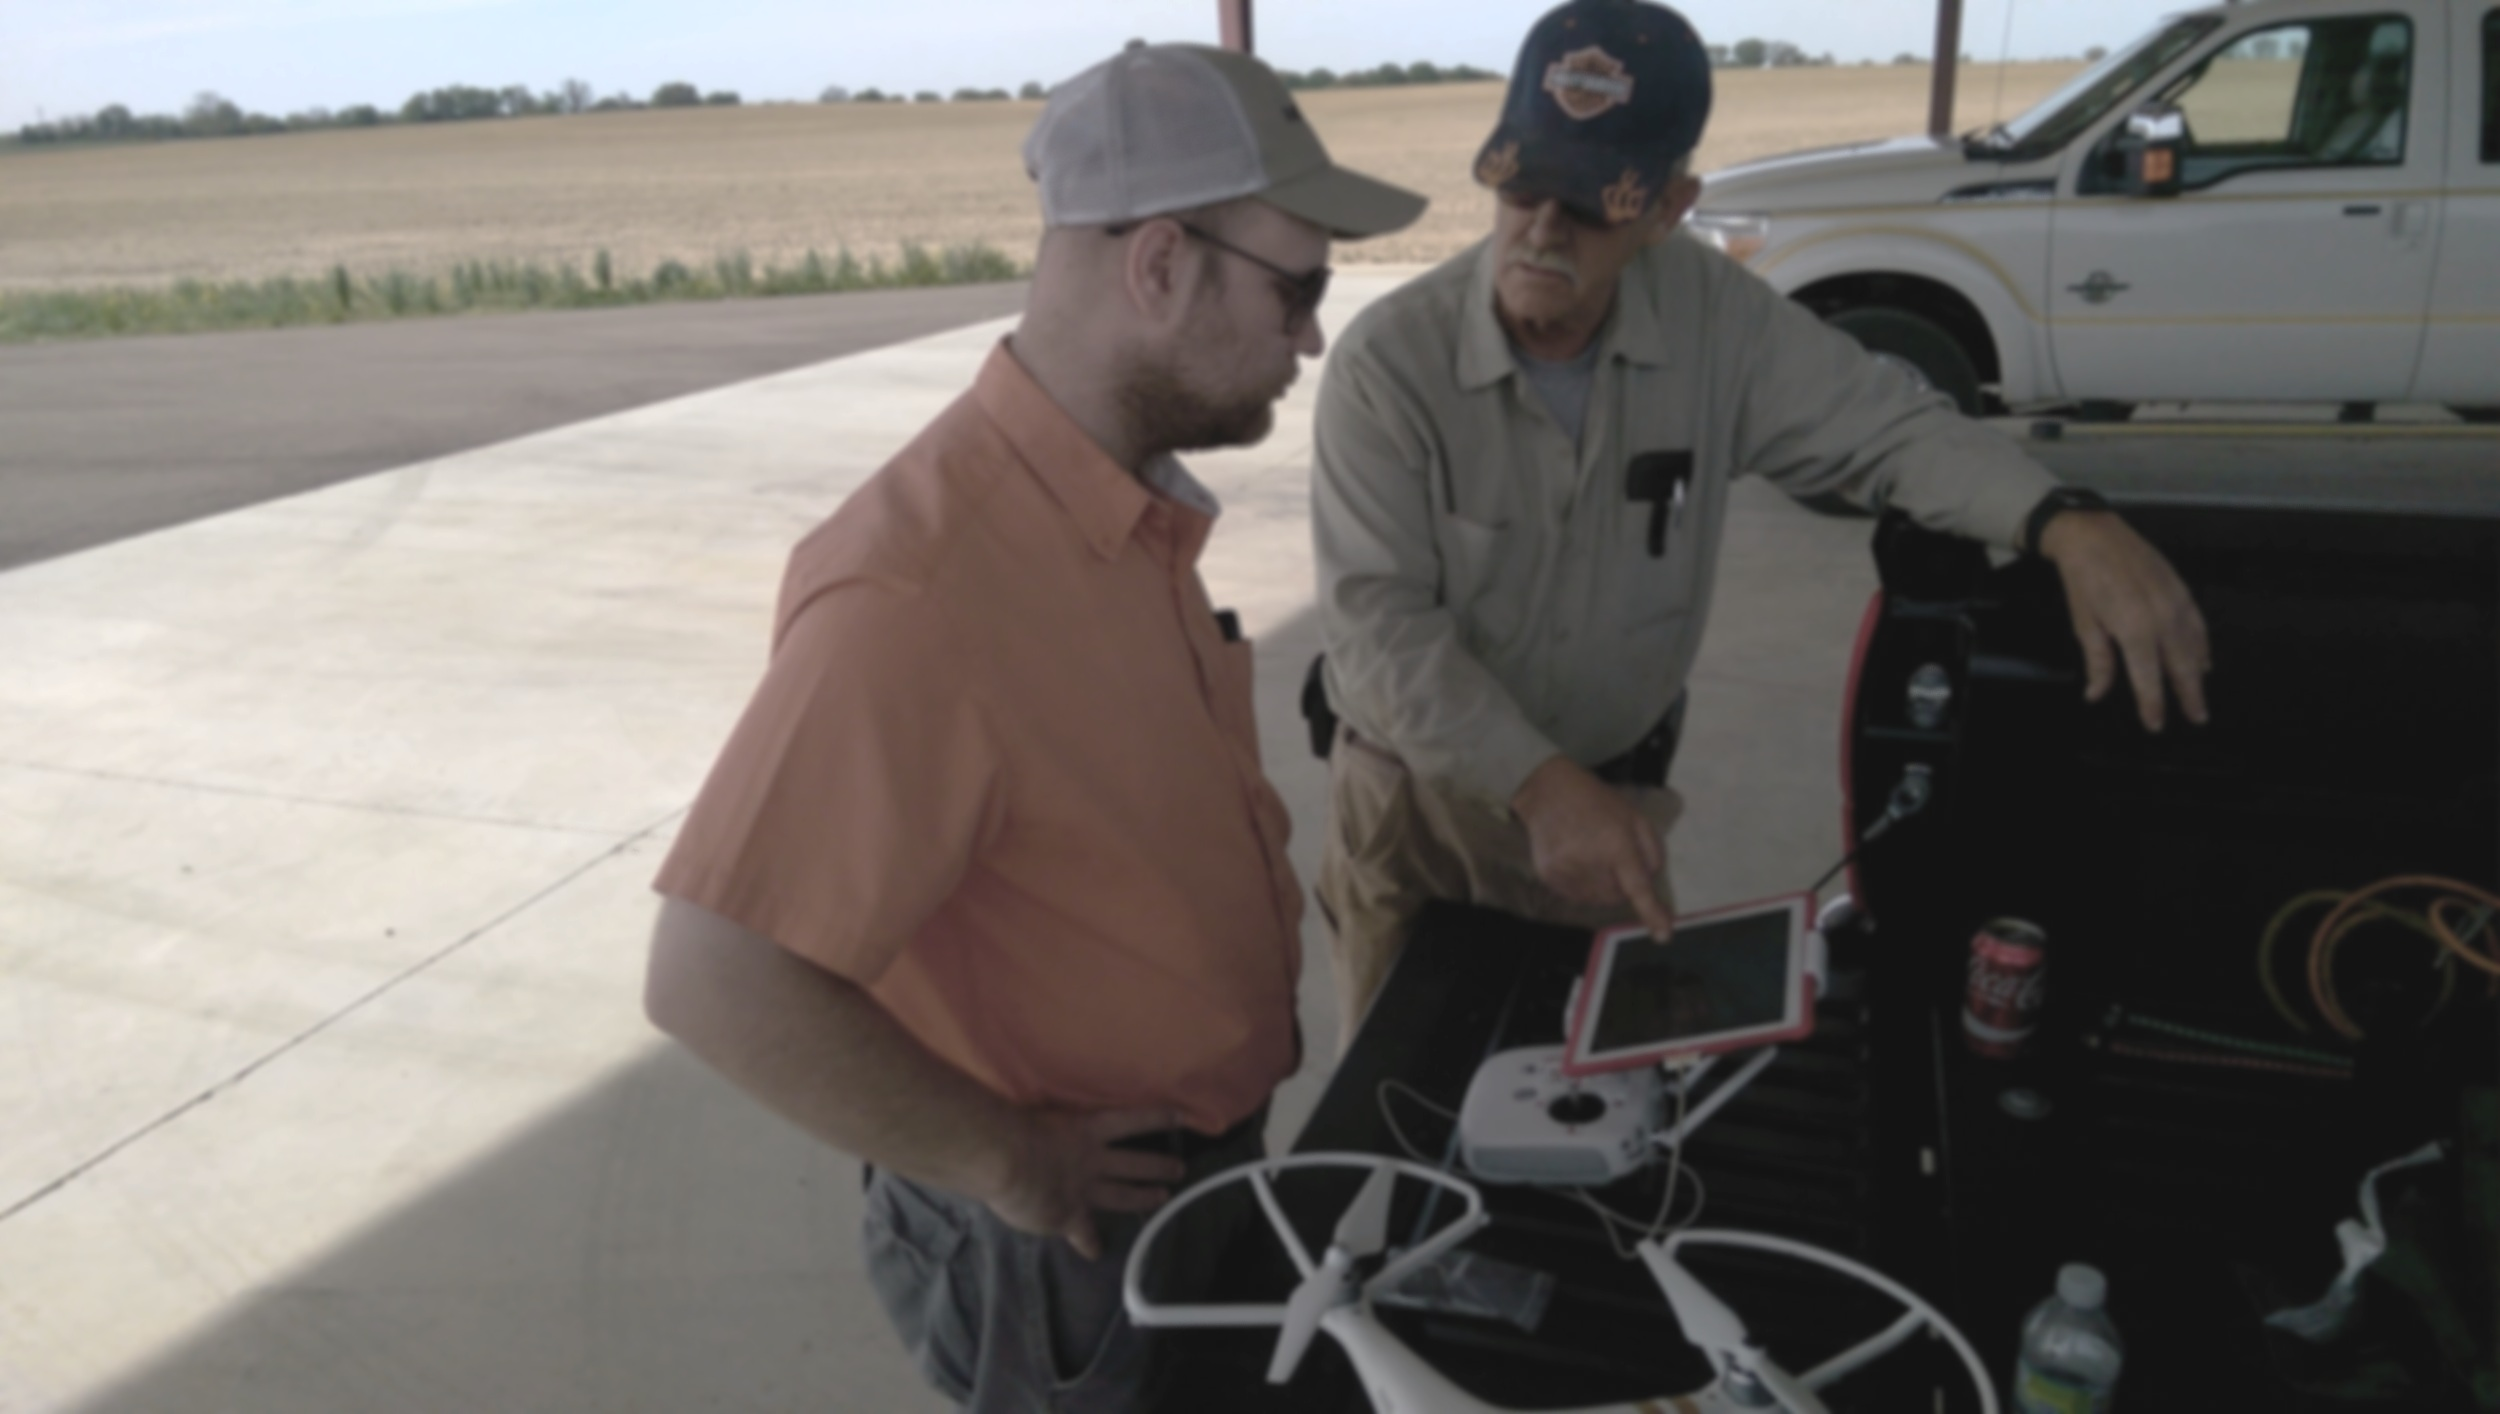 We Know Drones - With 75+ years of military and commercial aviation experience from our staff, FSS Ventures is uniquely poised to advise, assist and direct organizations toward optimizing their potential on the digital frontier with the use of cutting-edge technology from the world's largest commercial drone manufacturer, DJI.